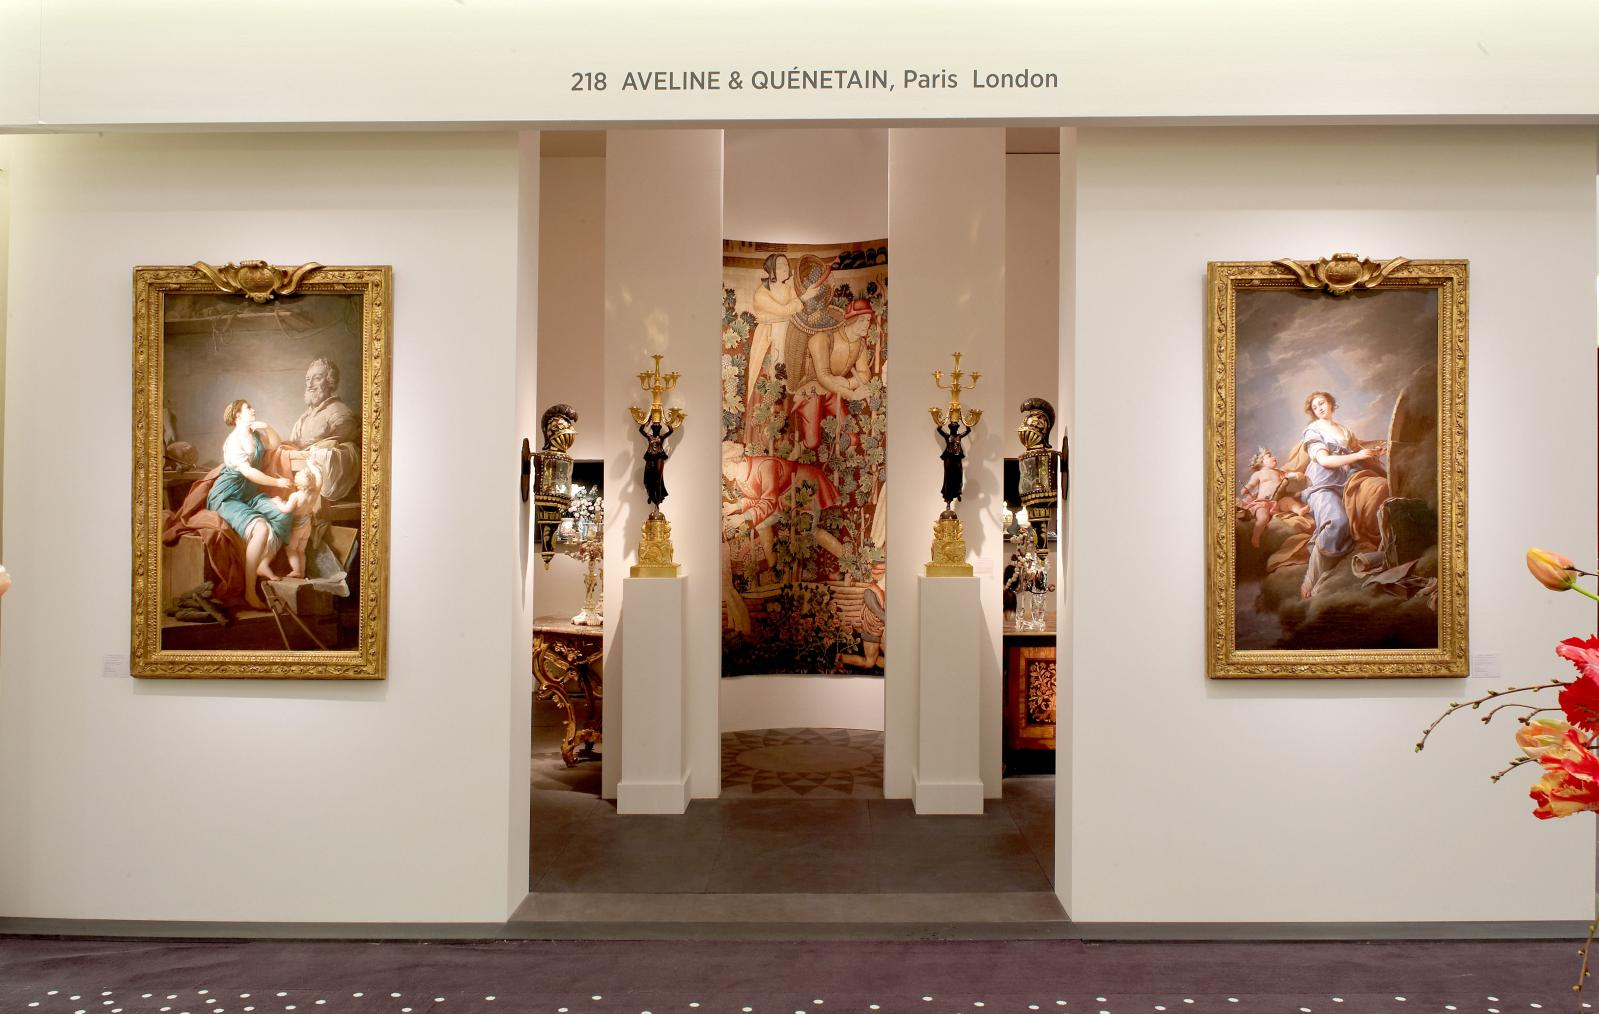 Christophe de Quénetain's stand at the 2015 edition of TEFAF, Maastricht. Design by Pierre Yovanovitch, paintings (in the foreground) by Nicolas-Berna